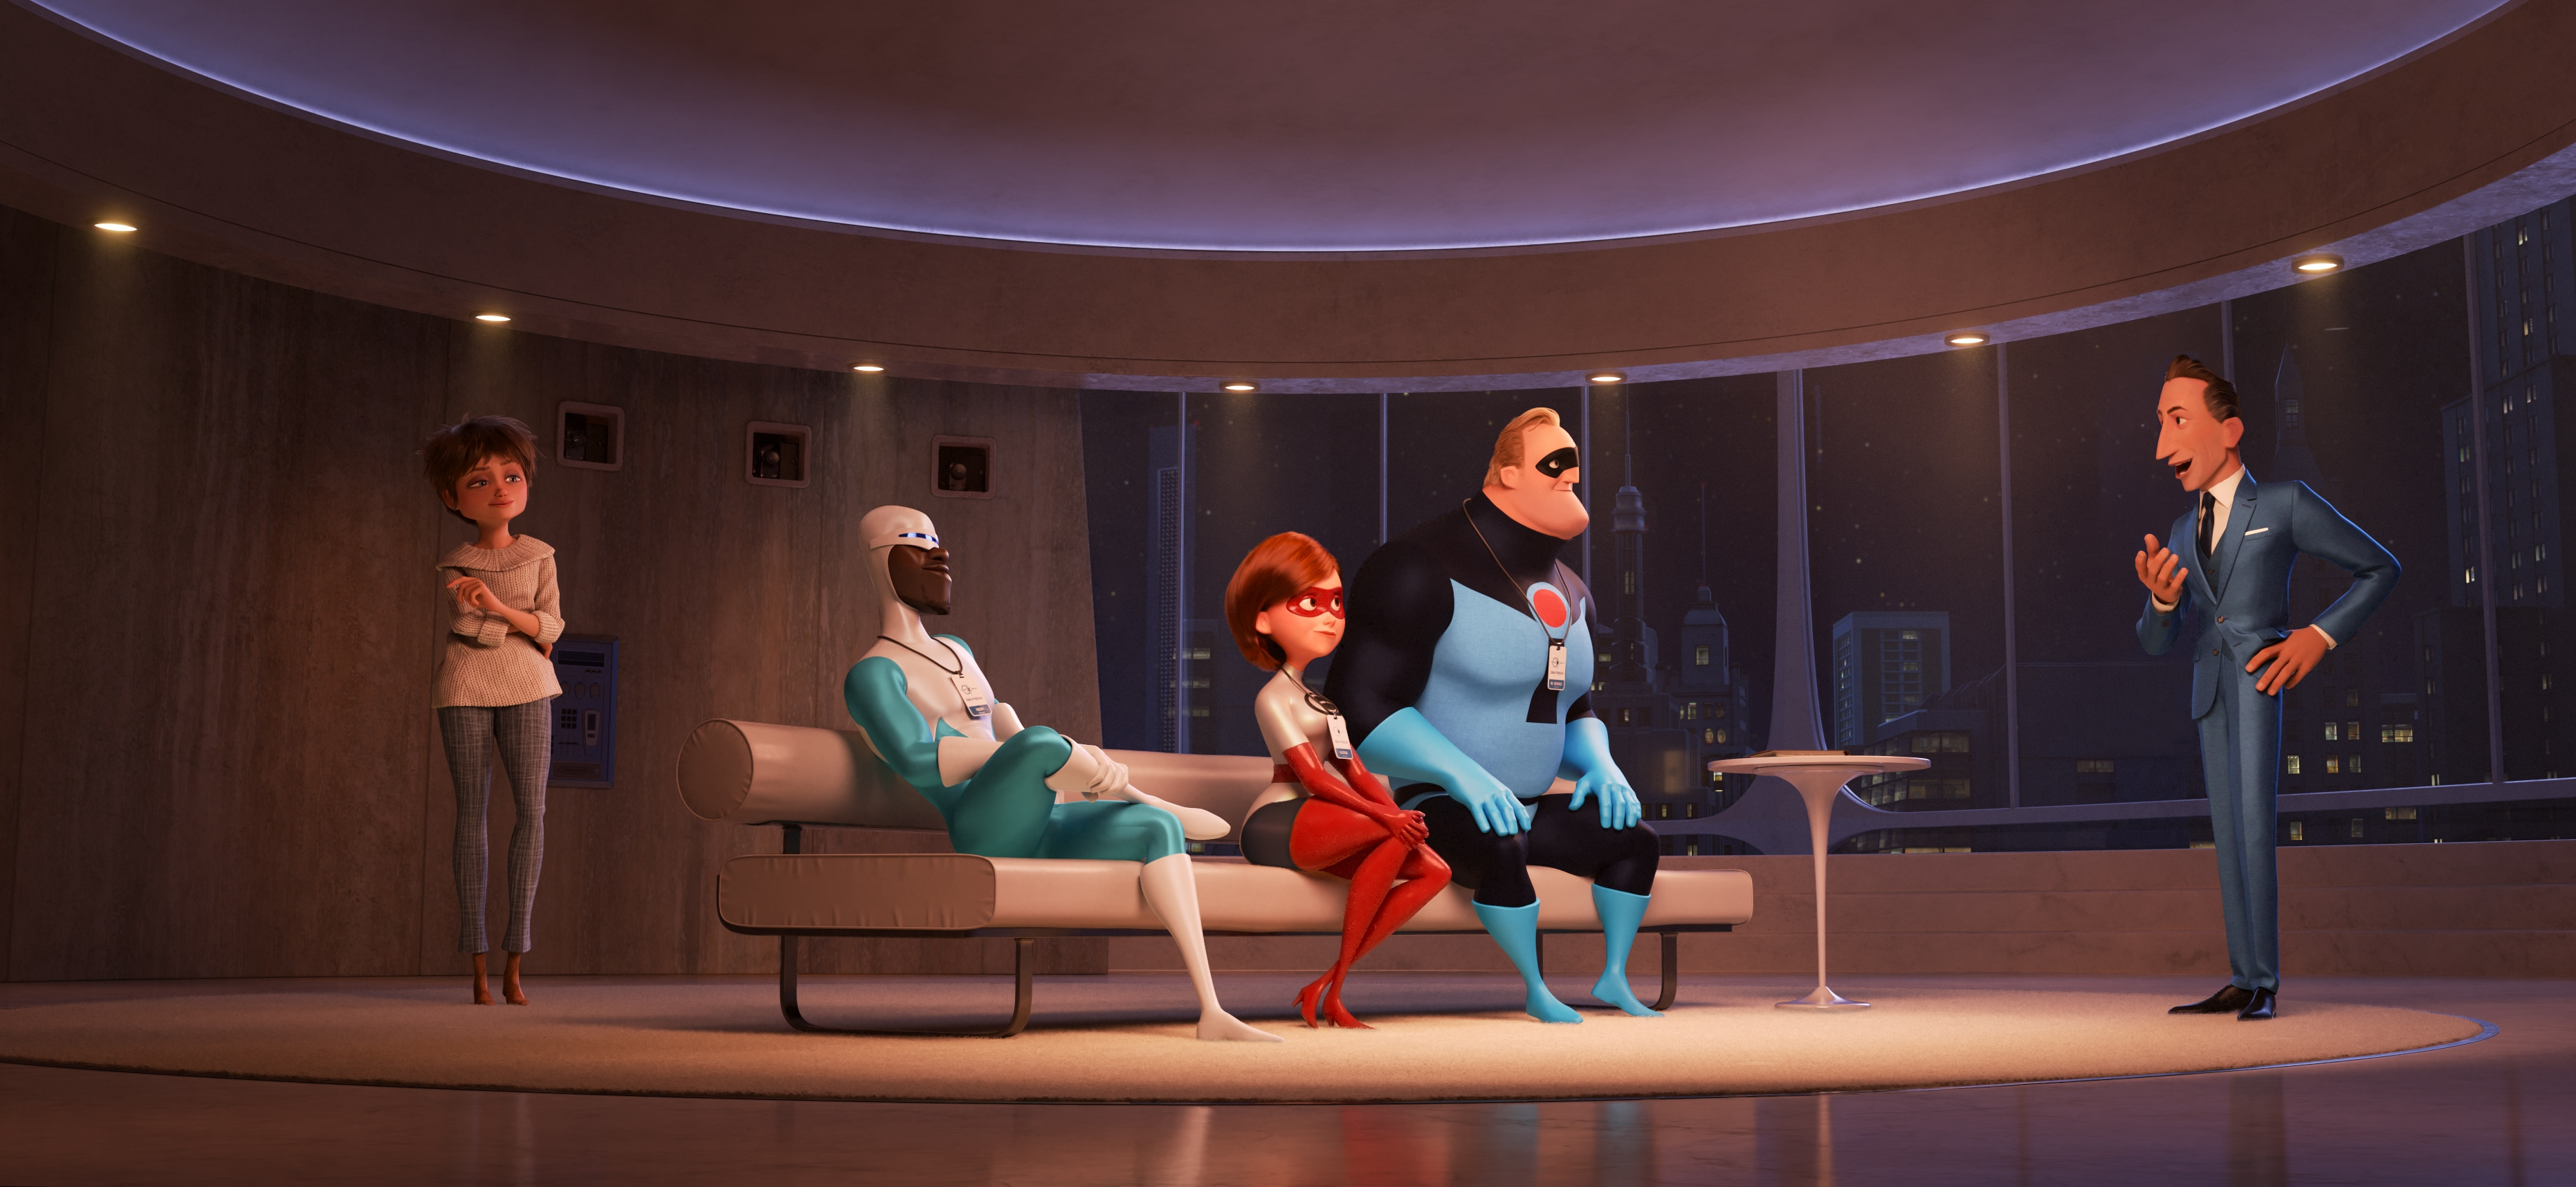 FREE Coloring Pages, Activity Sheets + More for Incredibles 2 #Incredibles2